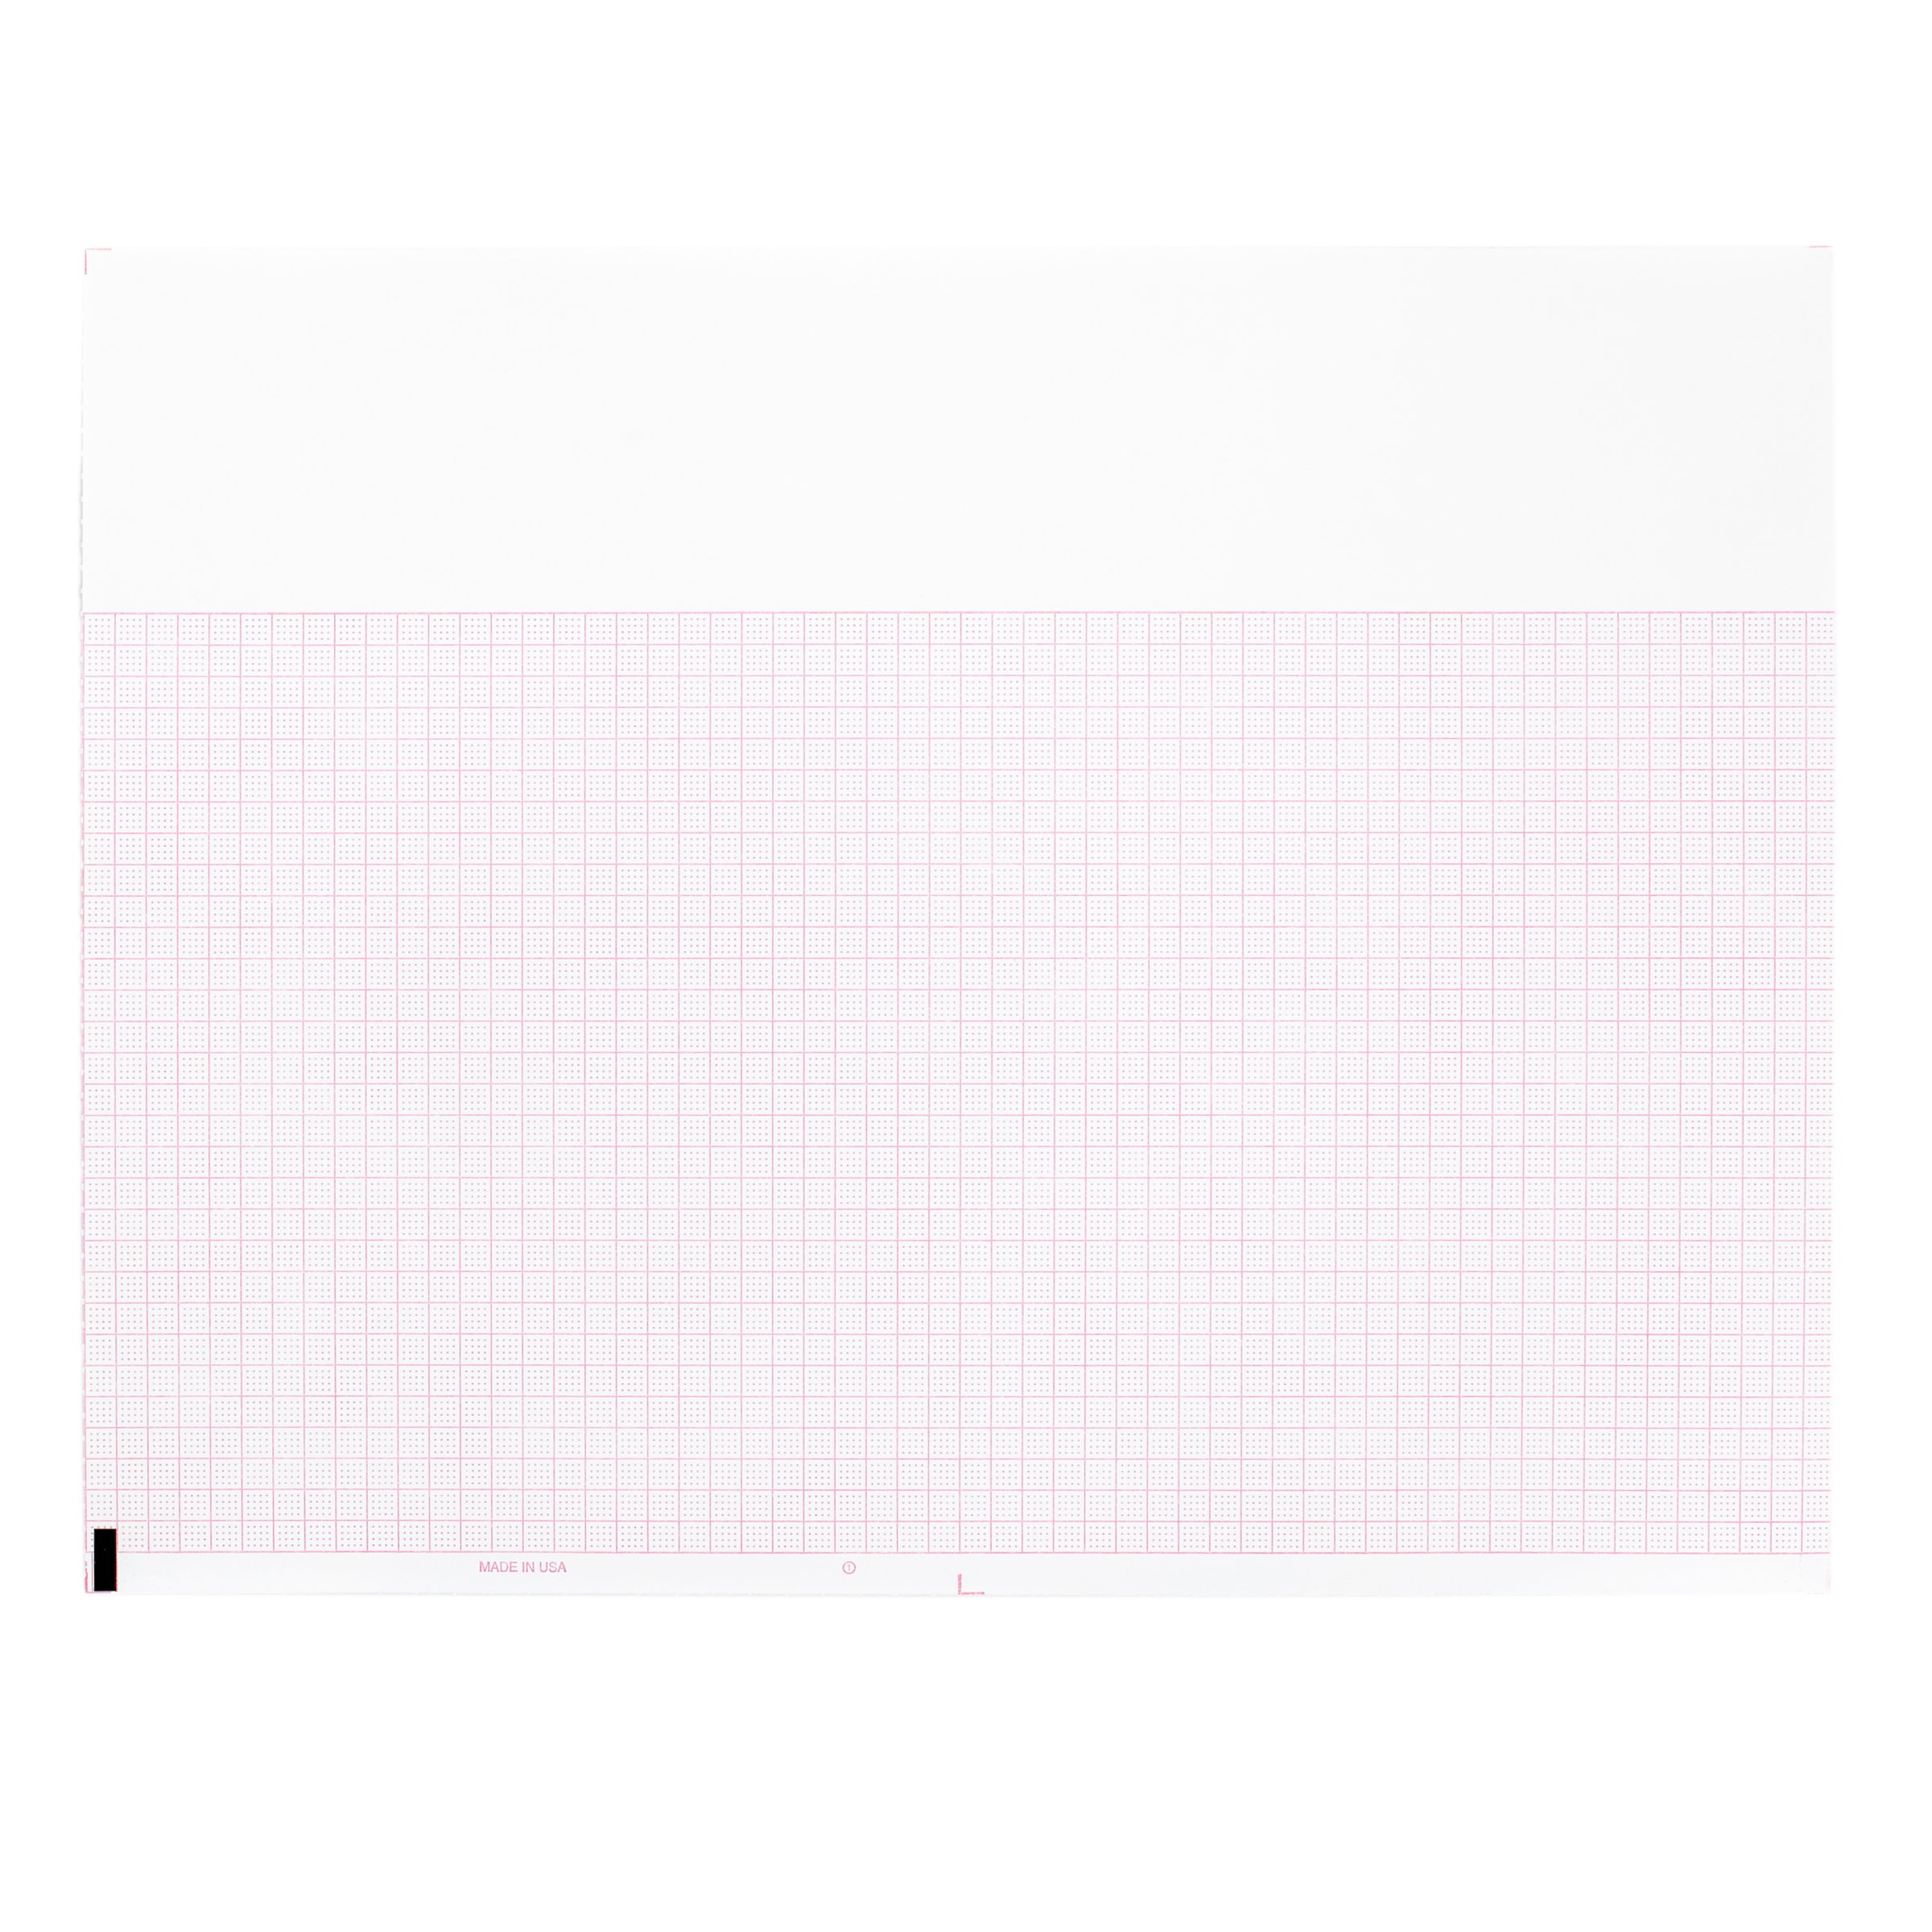 Burdick Compatible 007983 Medical Cardiology Recording Chart Paper Z-Fold, Size 8.5'' x 11'', Grid Color Red, Pad of 200